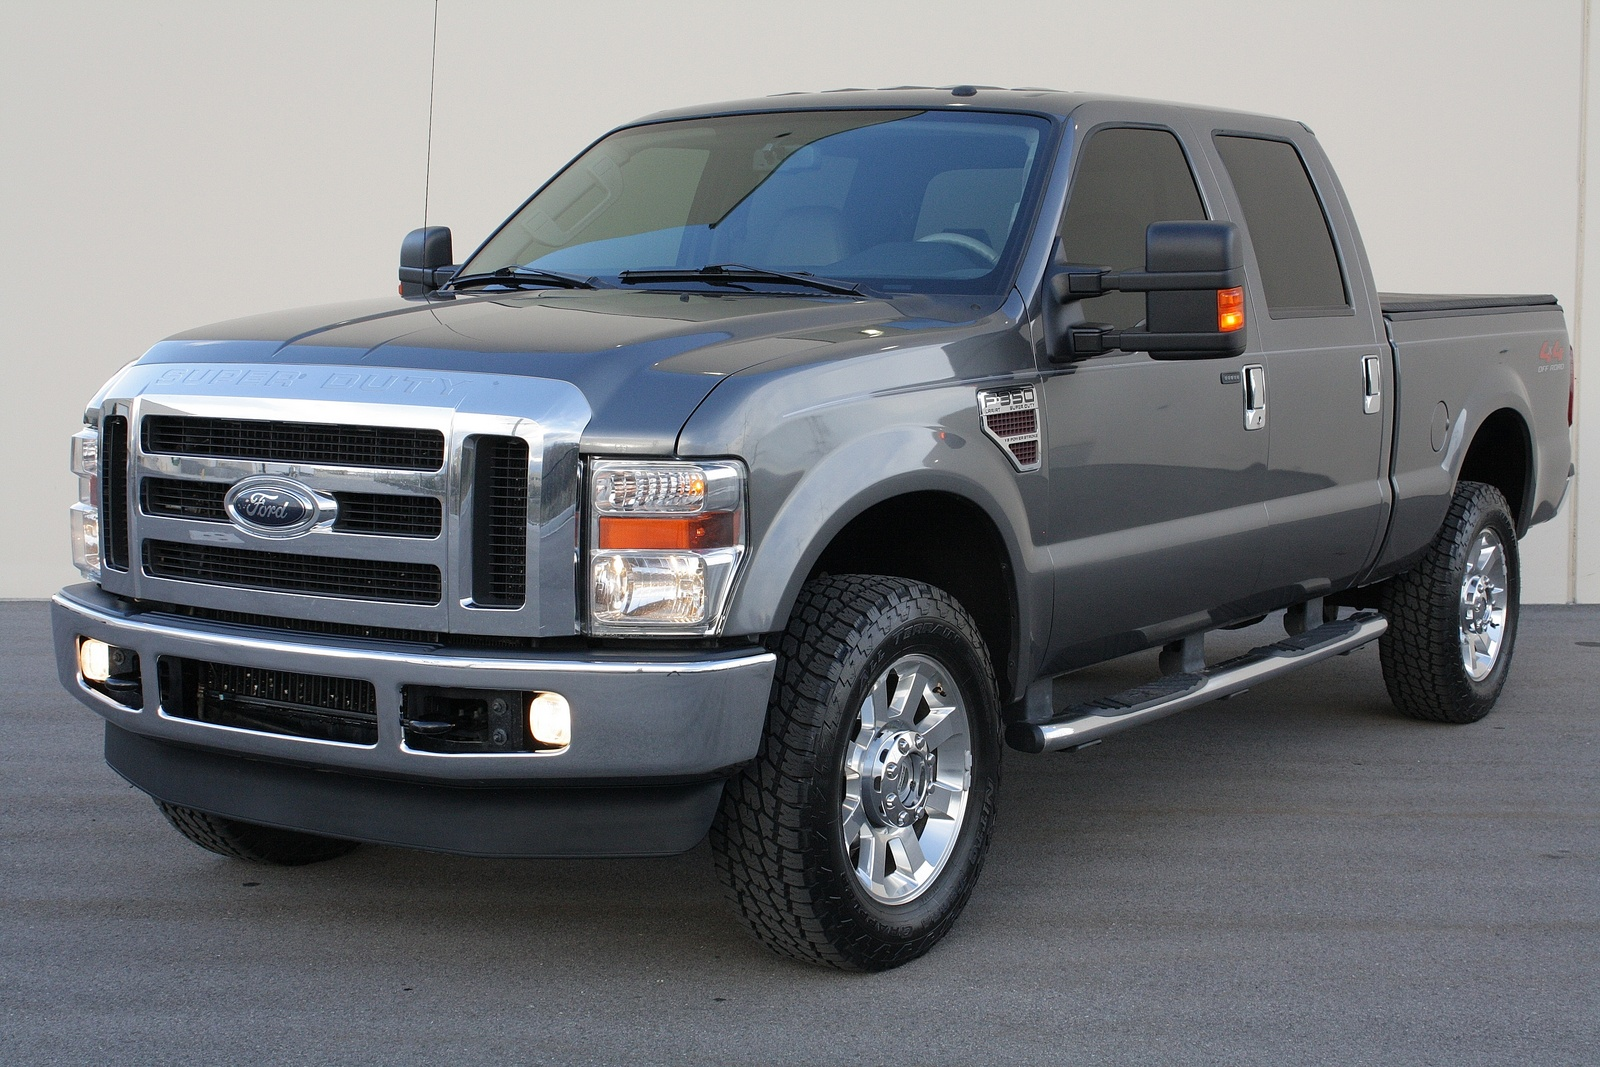 2009 ford f 350 super duty pictures cargurus. Black Bedroom Furniture Sets. Home Design Ideas